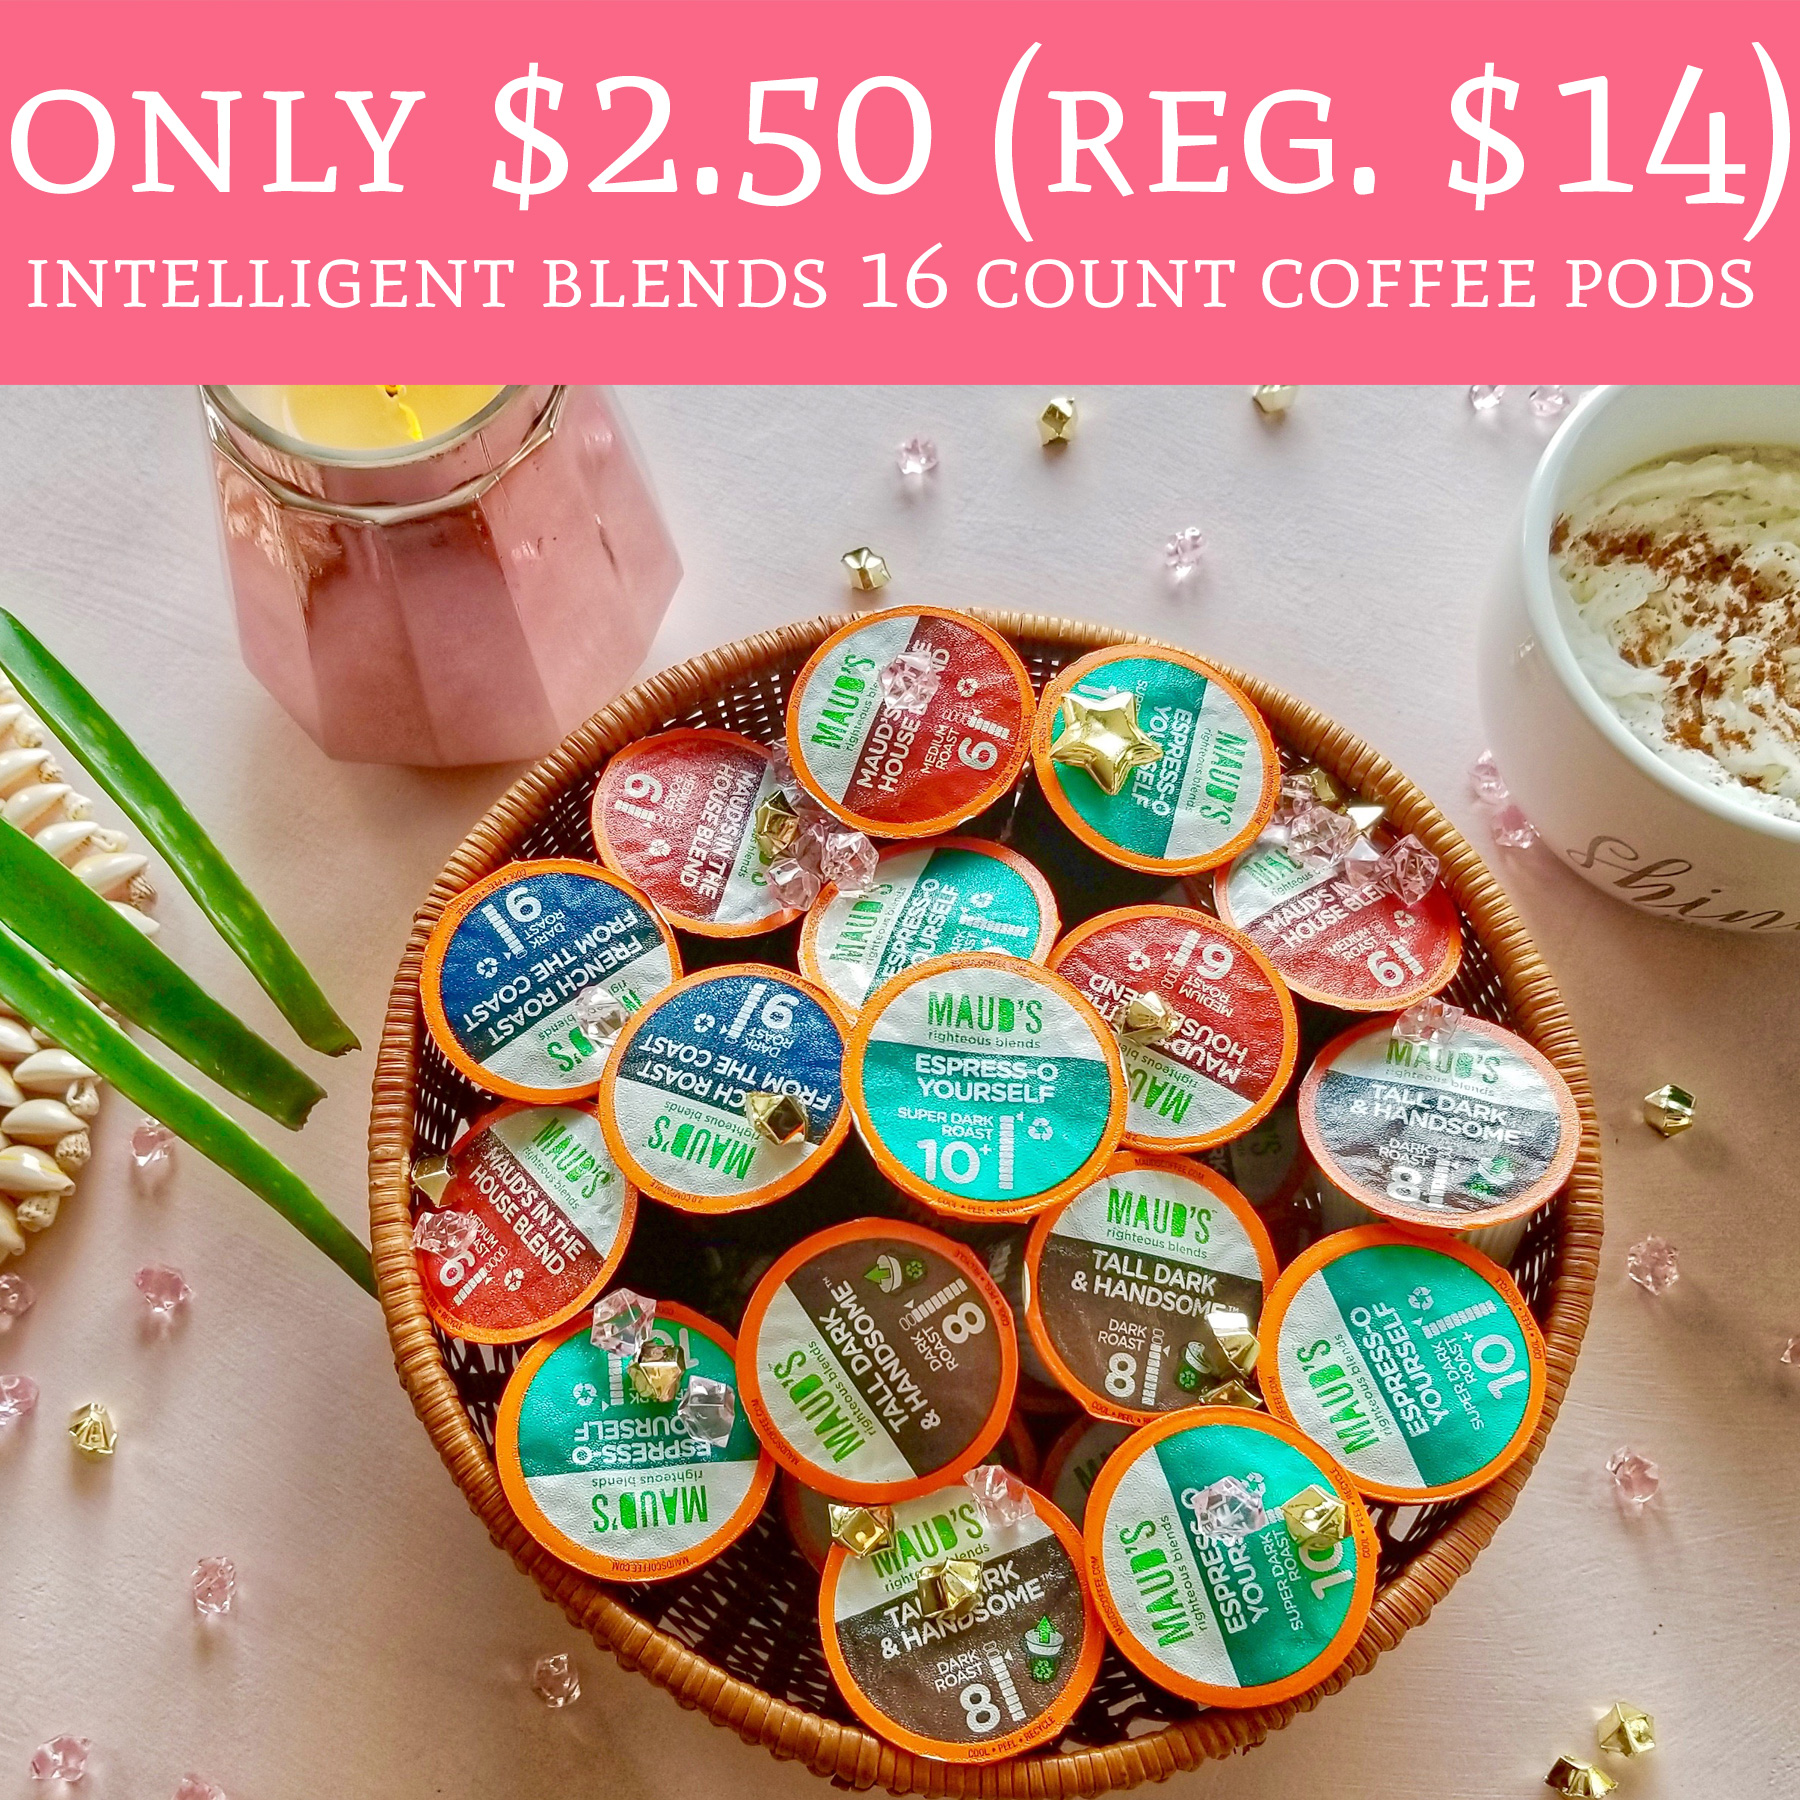 Intelligent blends coupon code